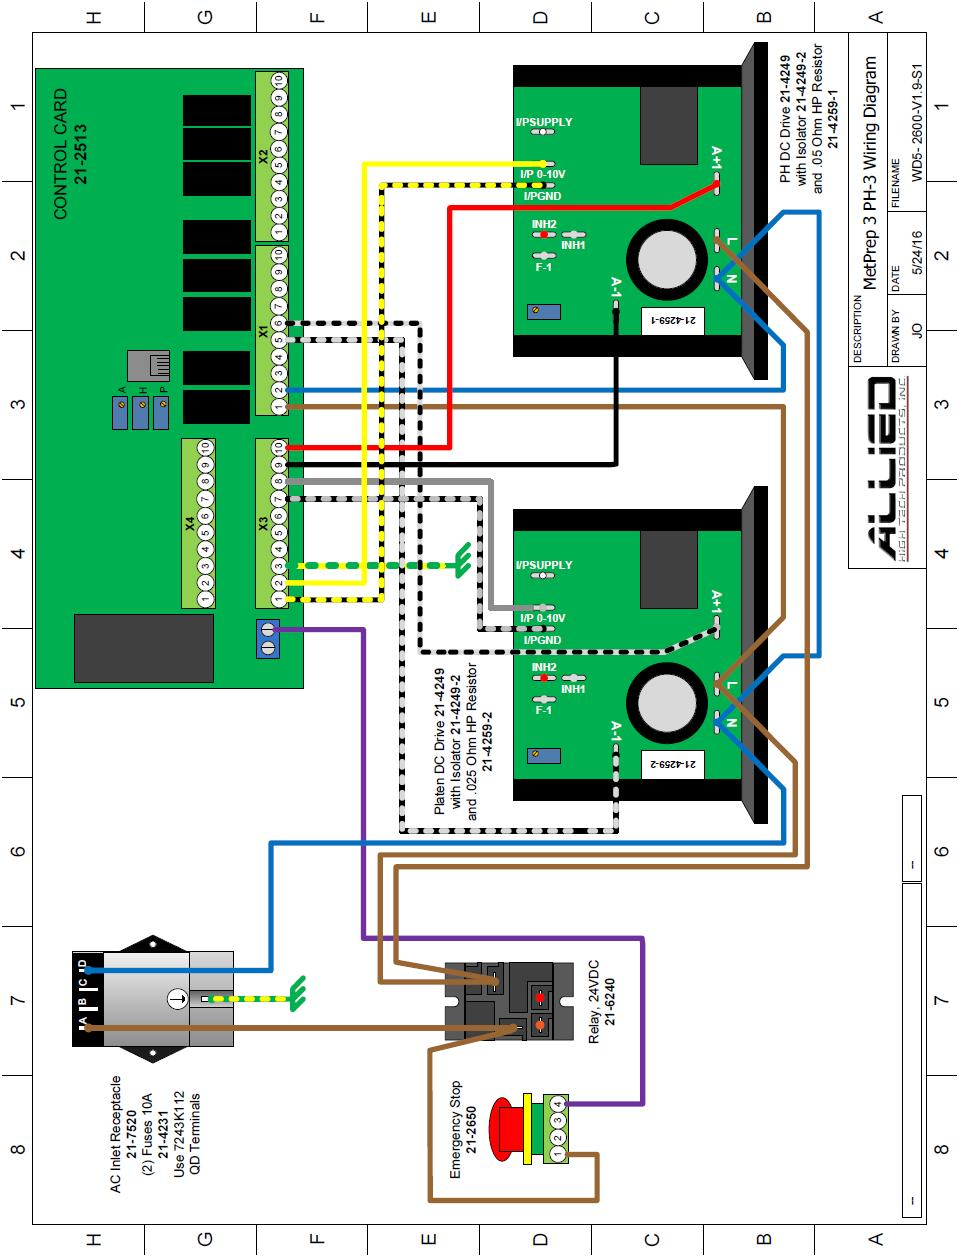 Wiring Diagrams Allied High Tech Products, Inc.